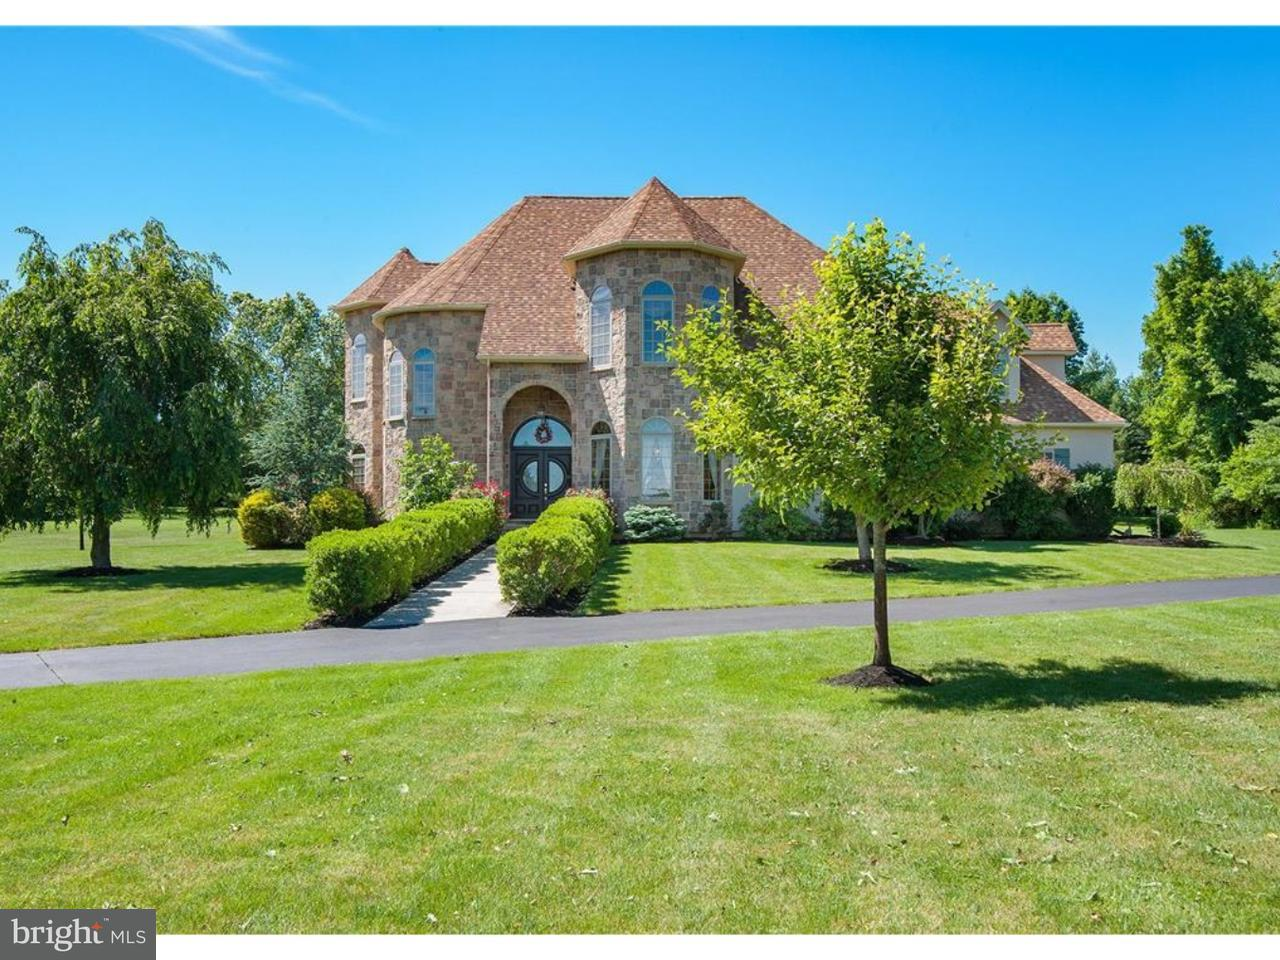 Single Family Home for Sale at 1870 OBRIENS Court Bethlehem, Pennsylvania 18015 United States